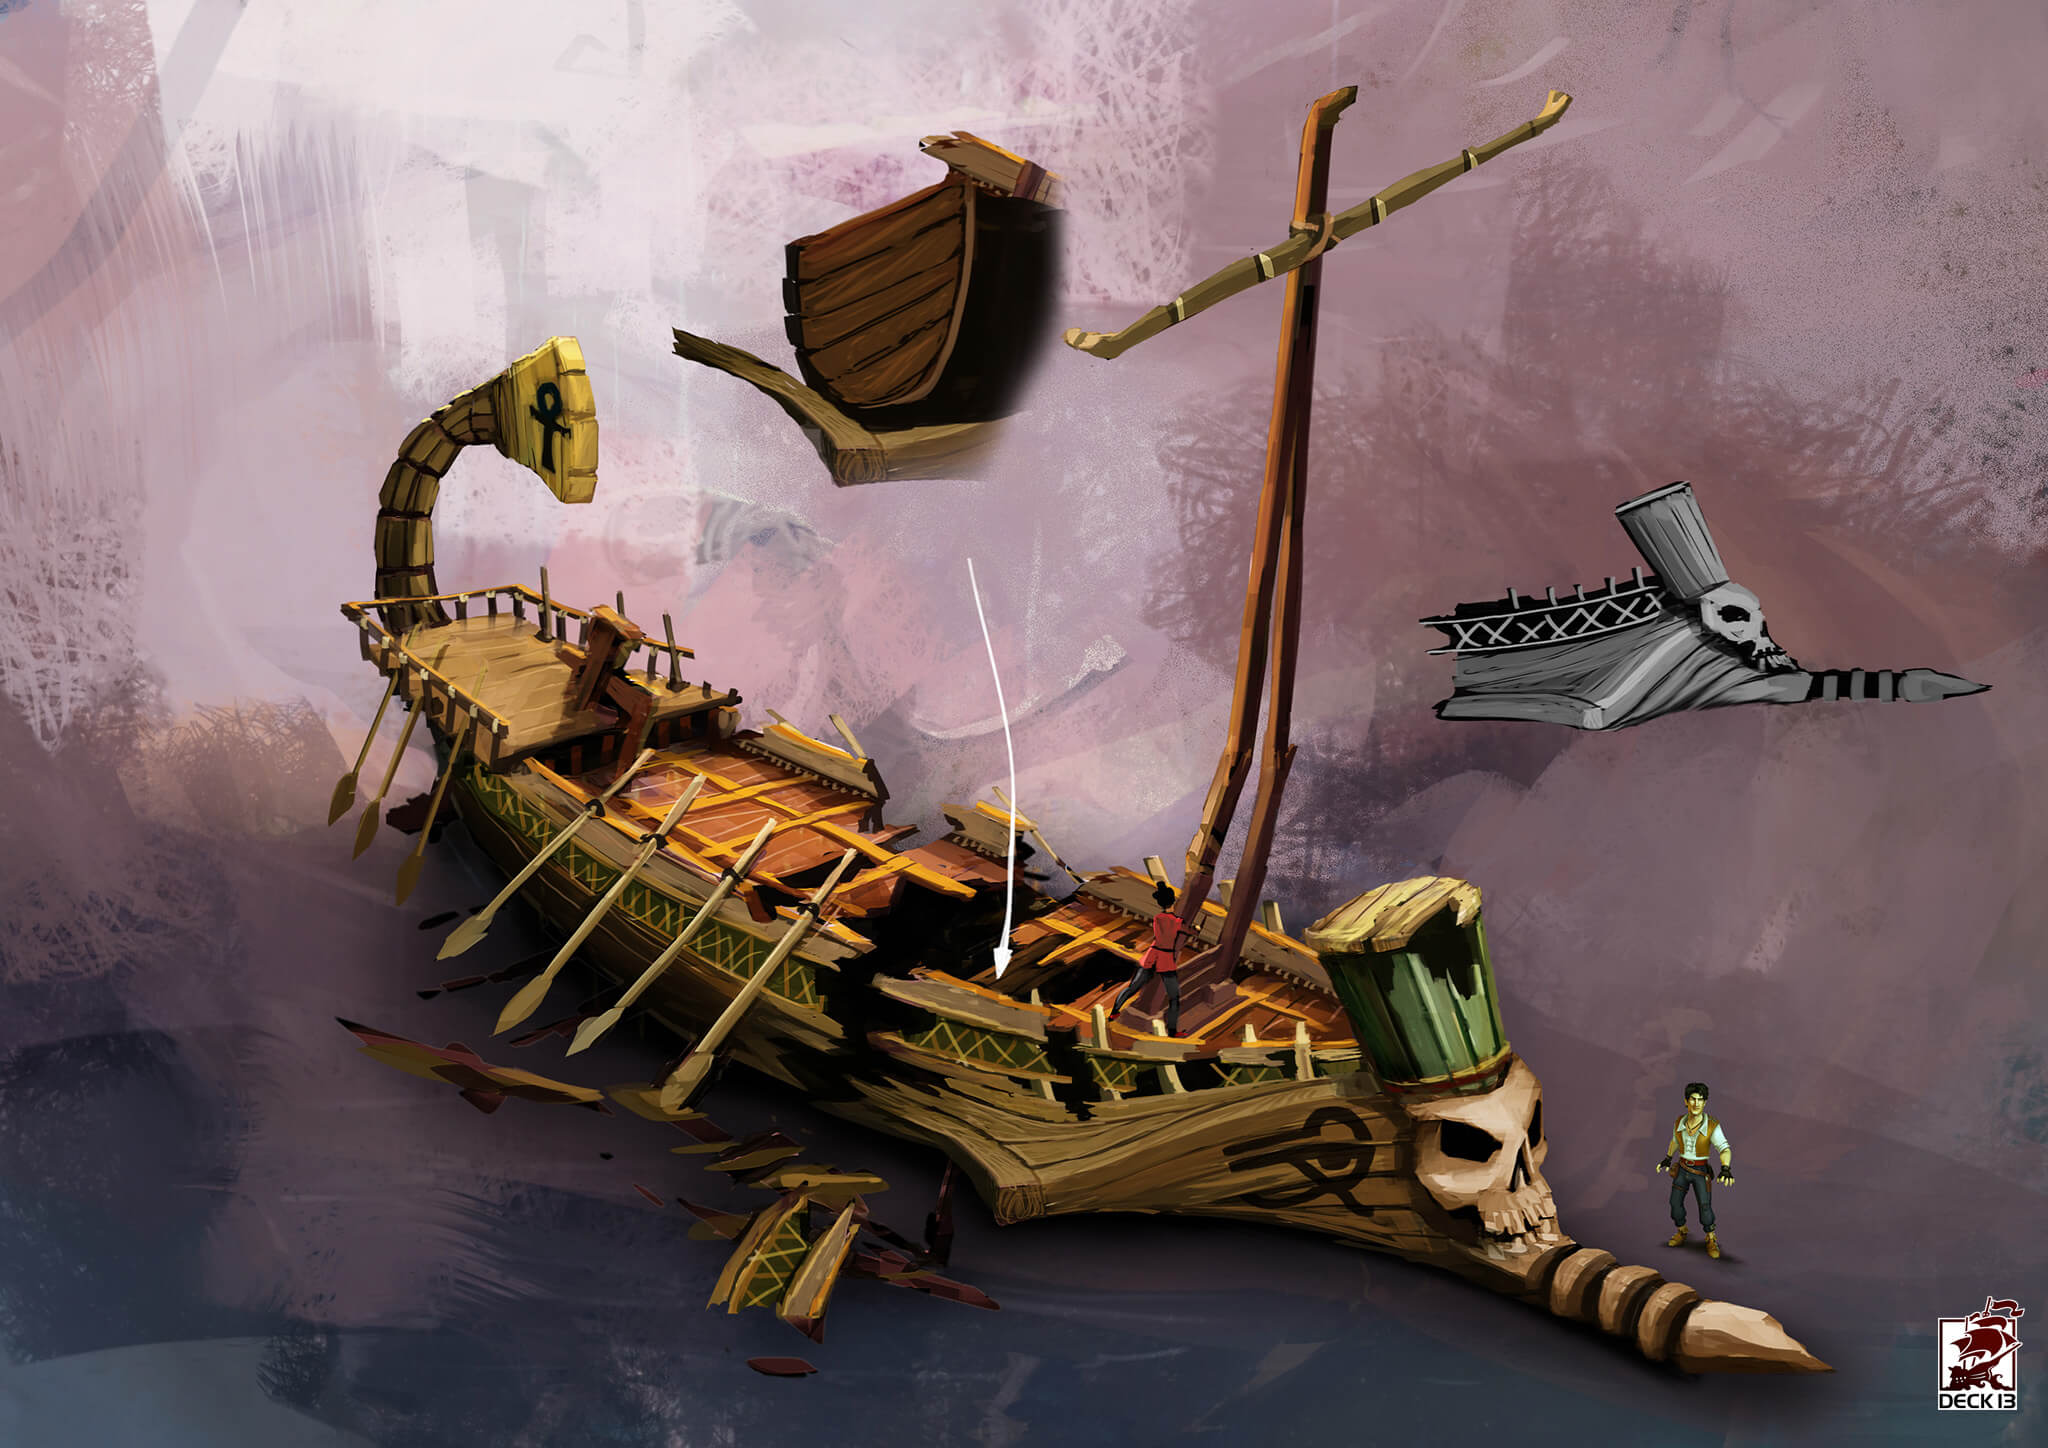 jack-keane-2-deck13-concept-art-felix-botho-haas-ship_ancient__05